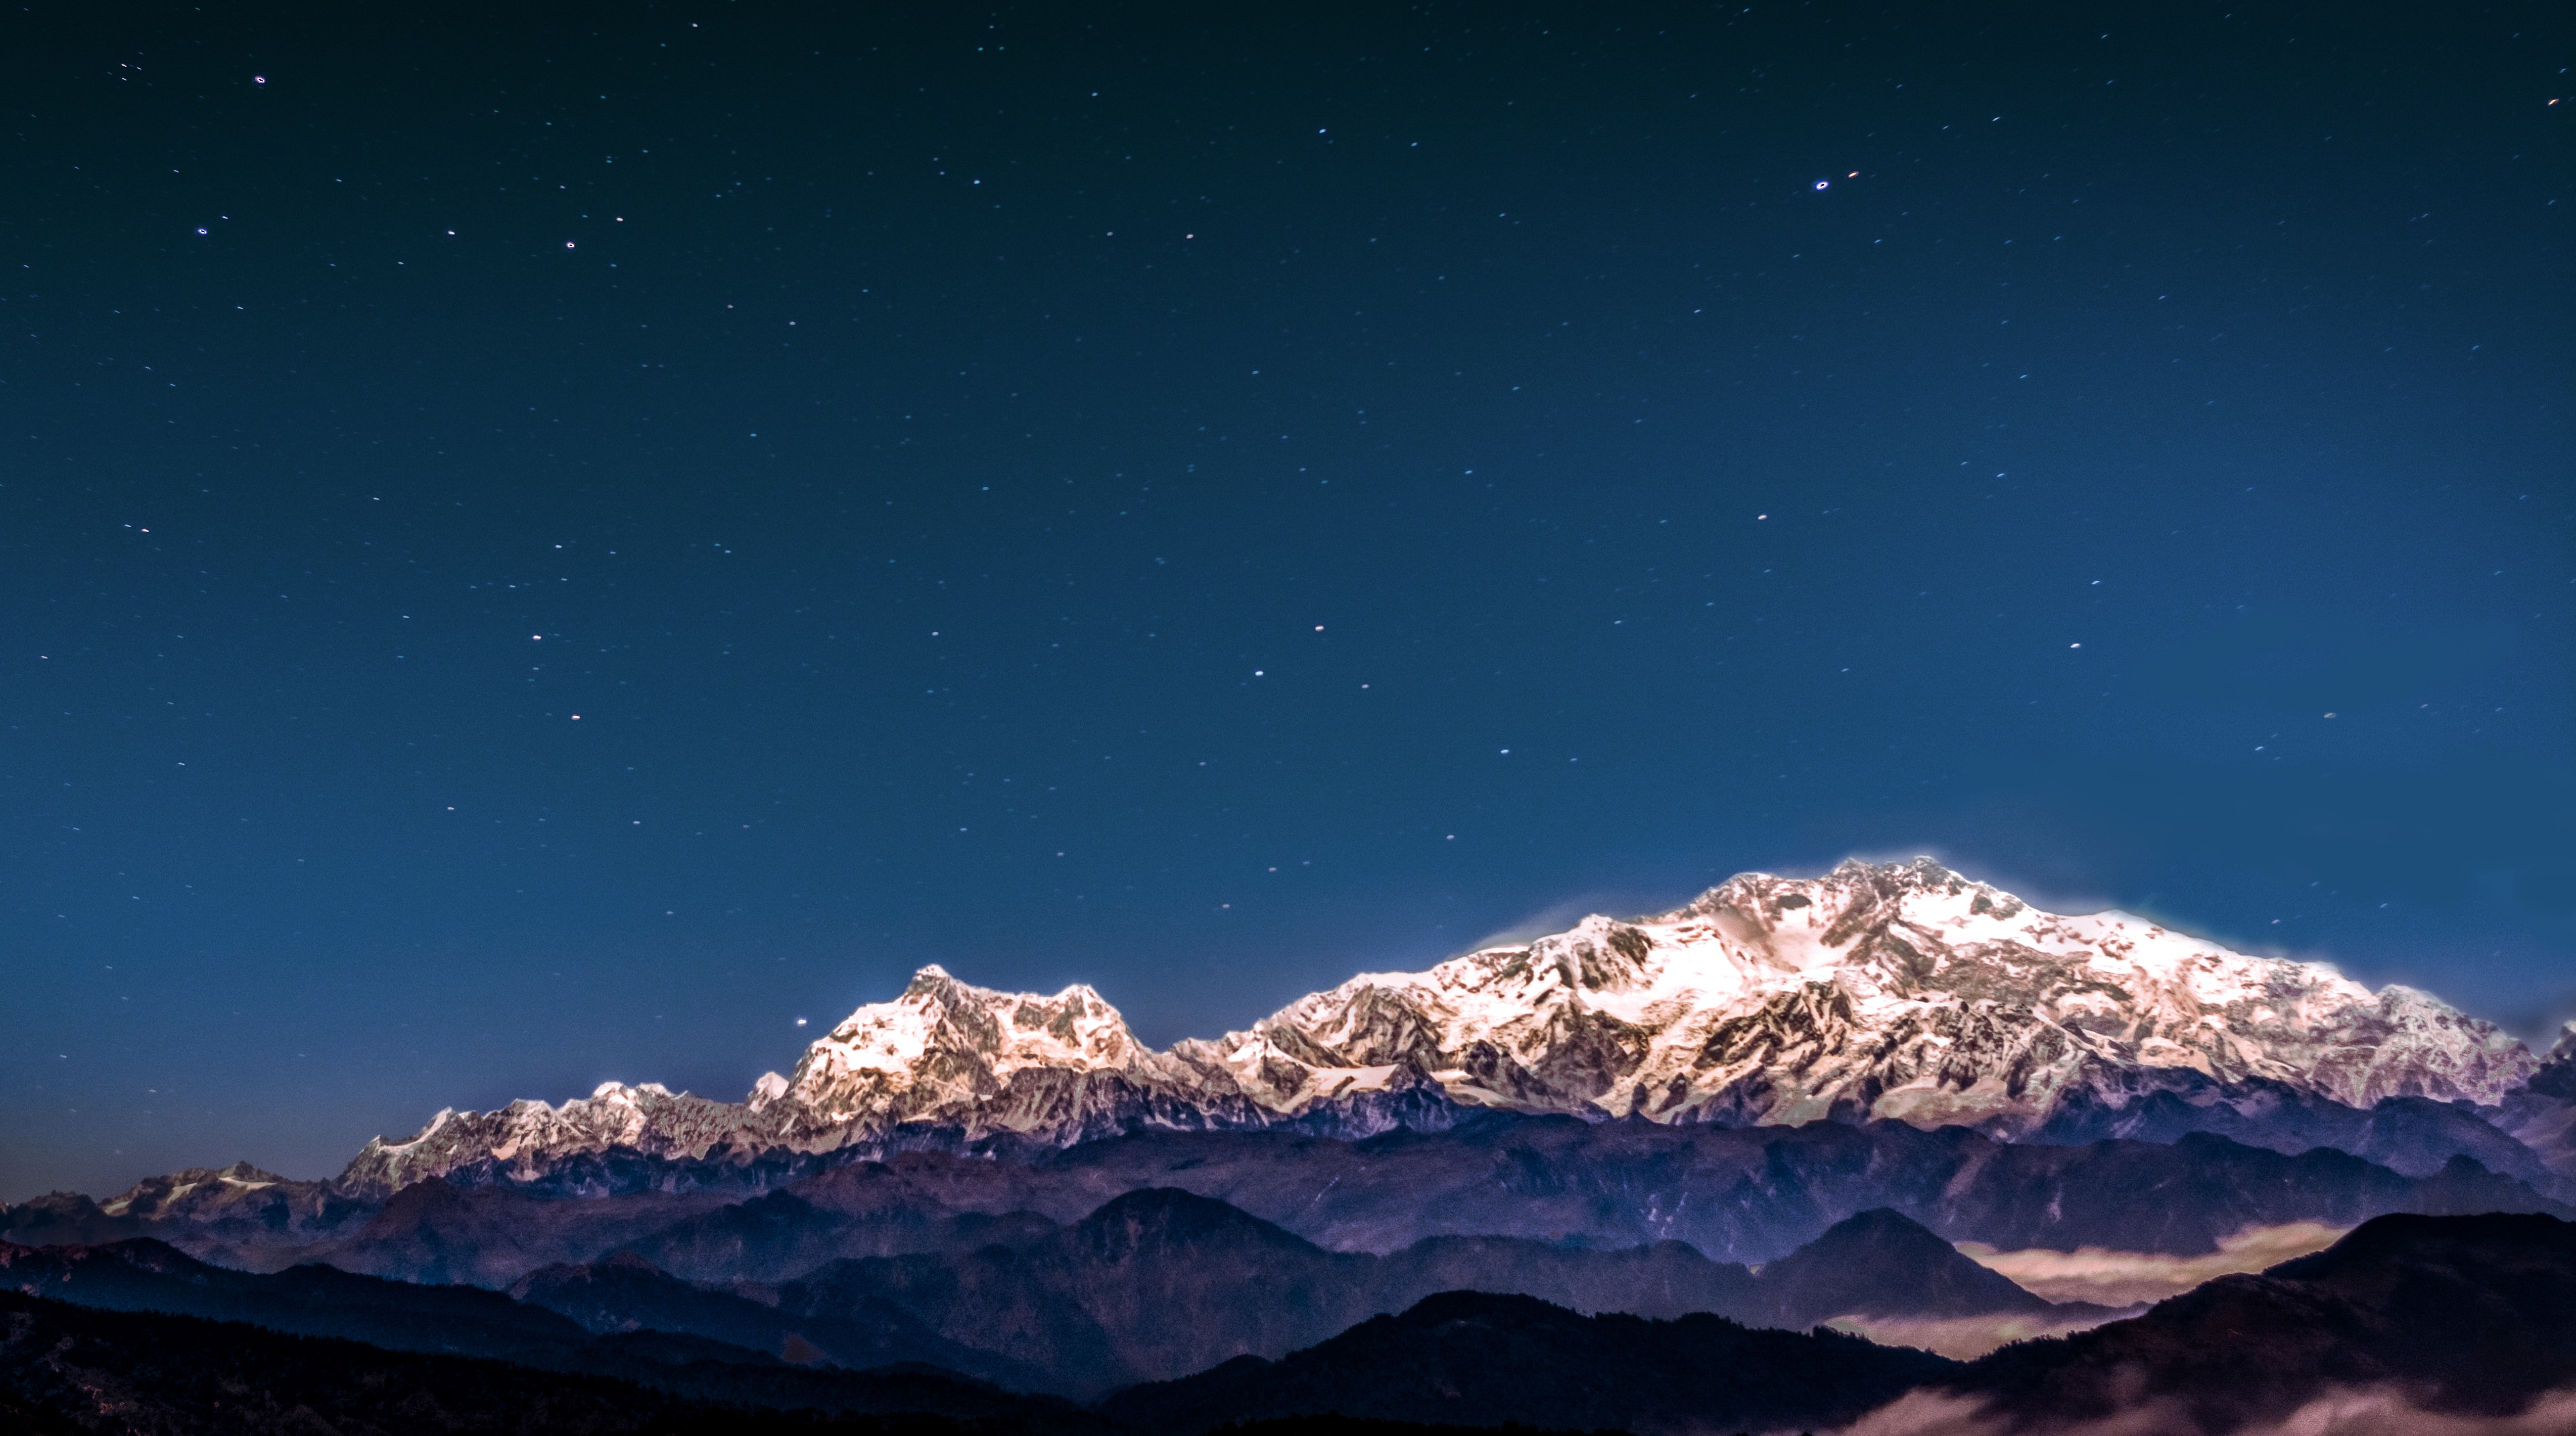 Snow covered mountains at Kanchenjunga South Peak during a starry night sky